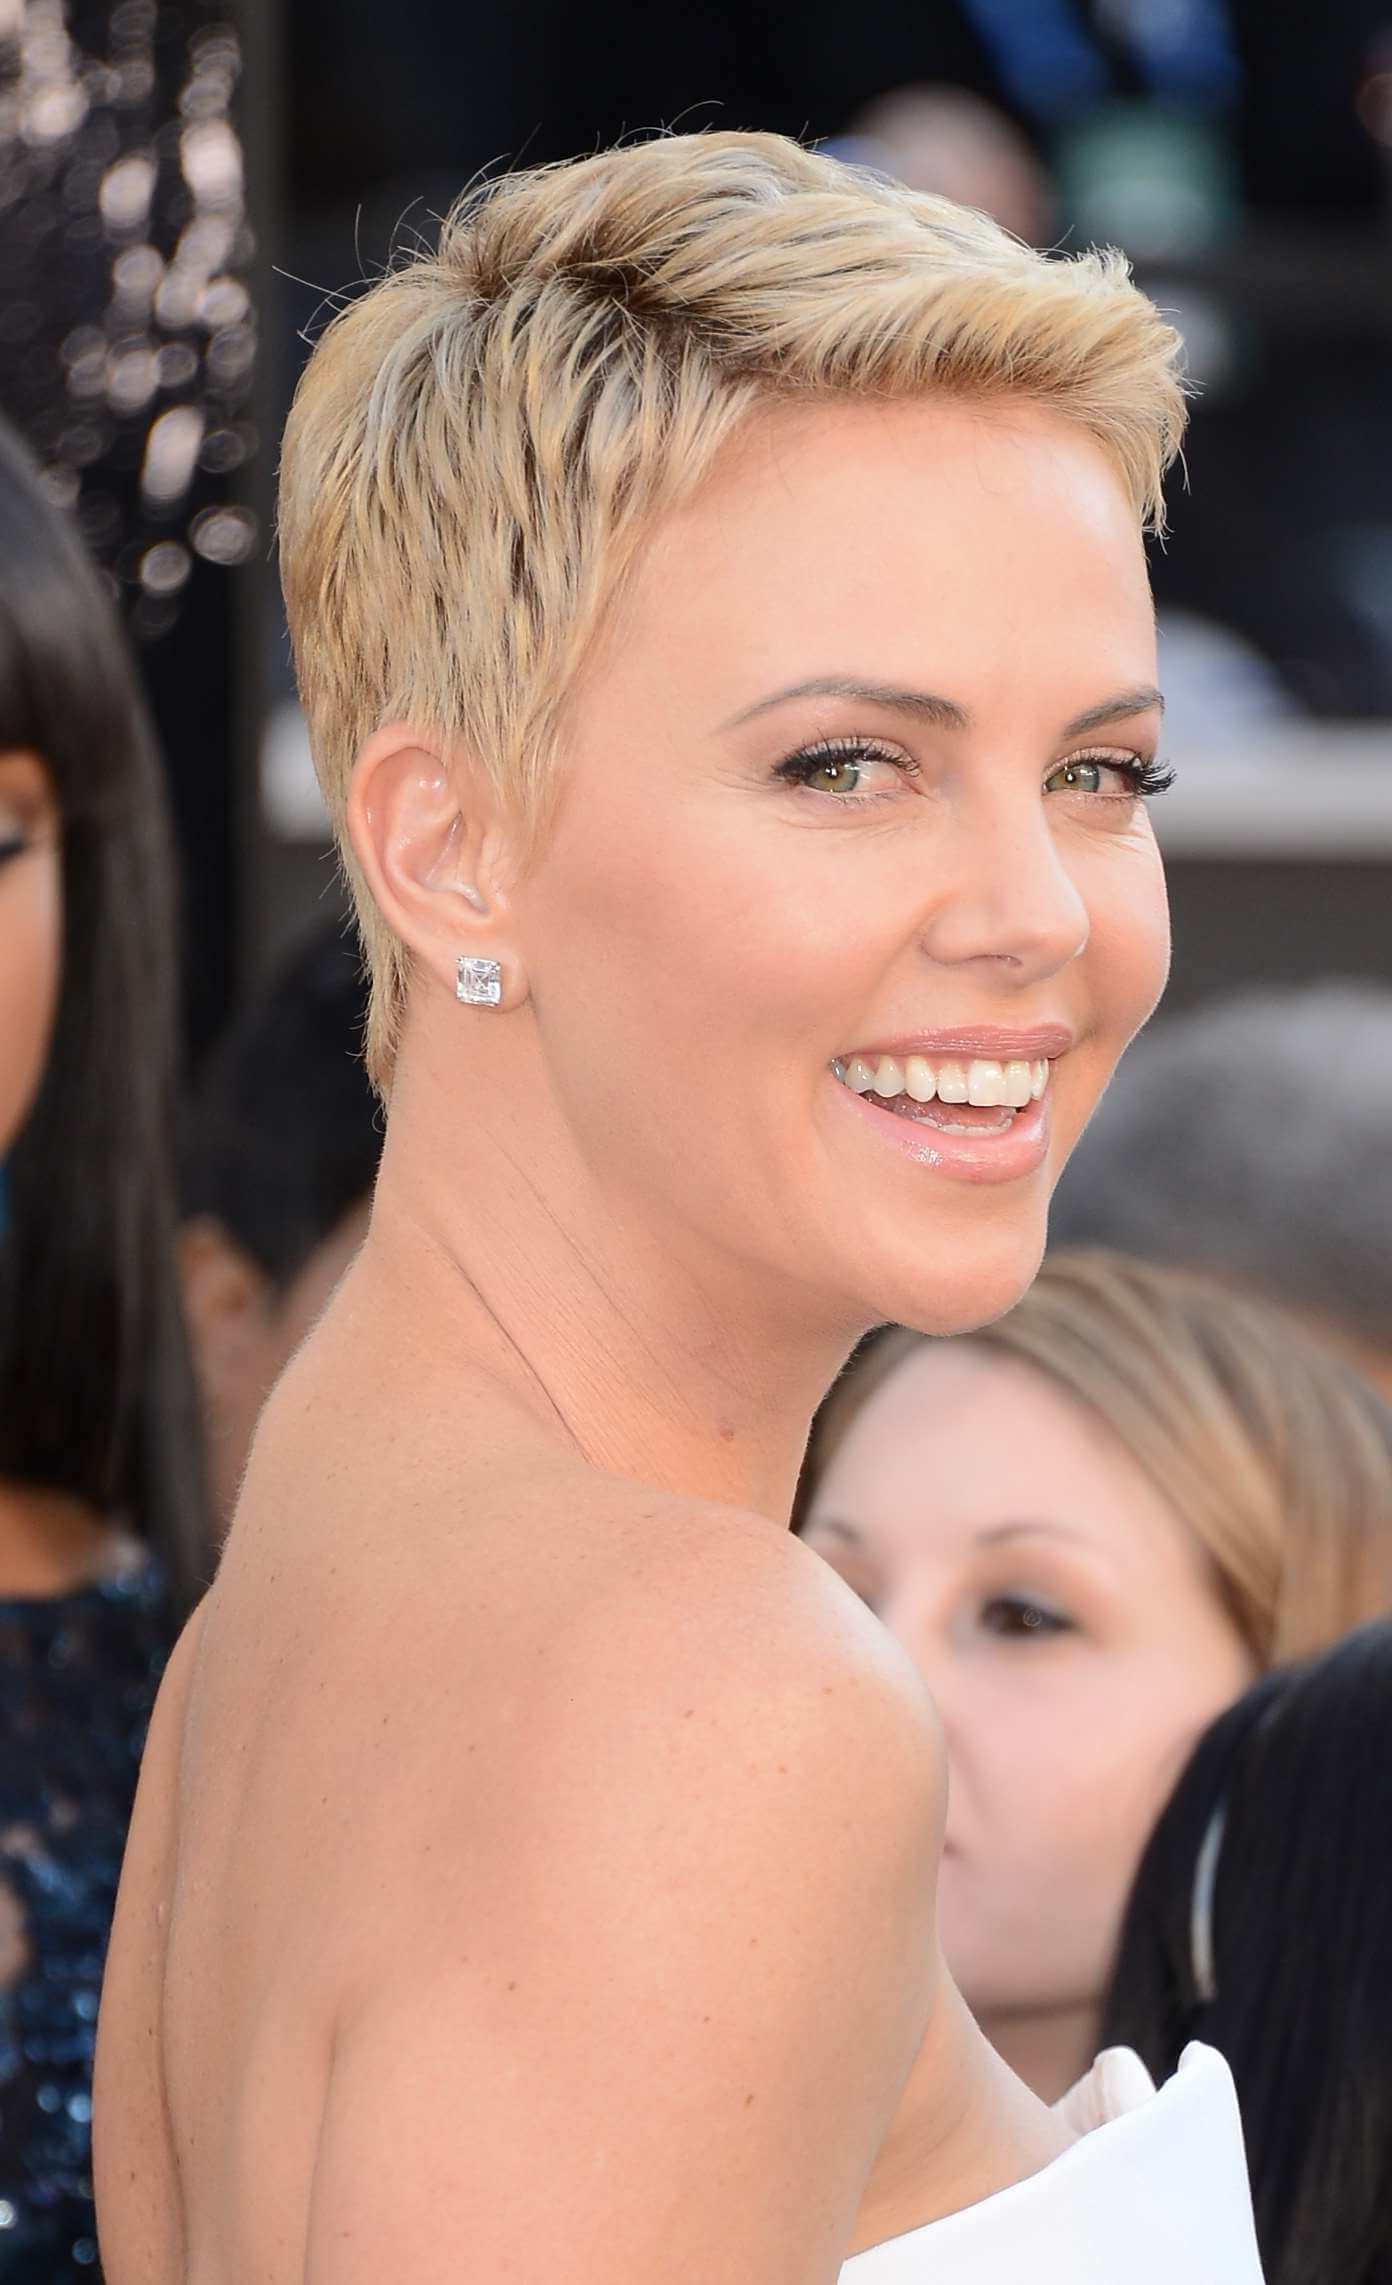 26 Things You Probably Didn't Know About Pixie Cut For Thin Hair Regarding Cute Short Haircuts For Thin Hair (View 23 of 25)